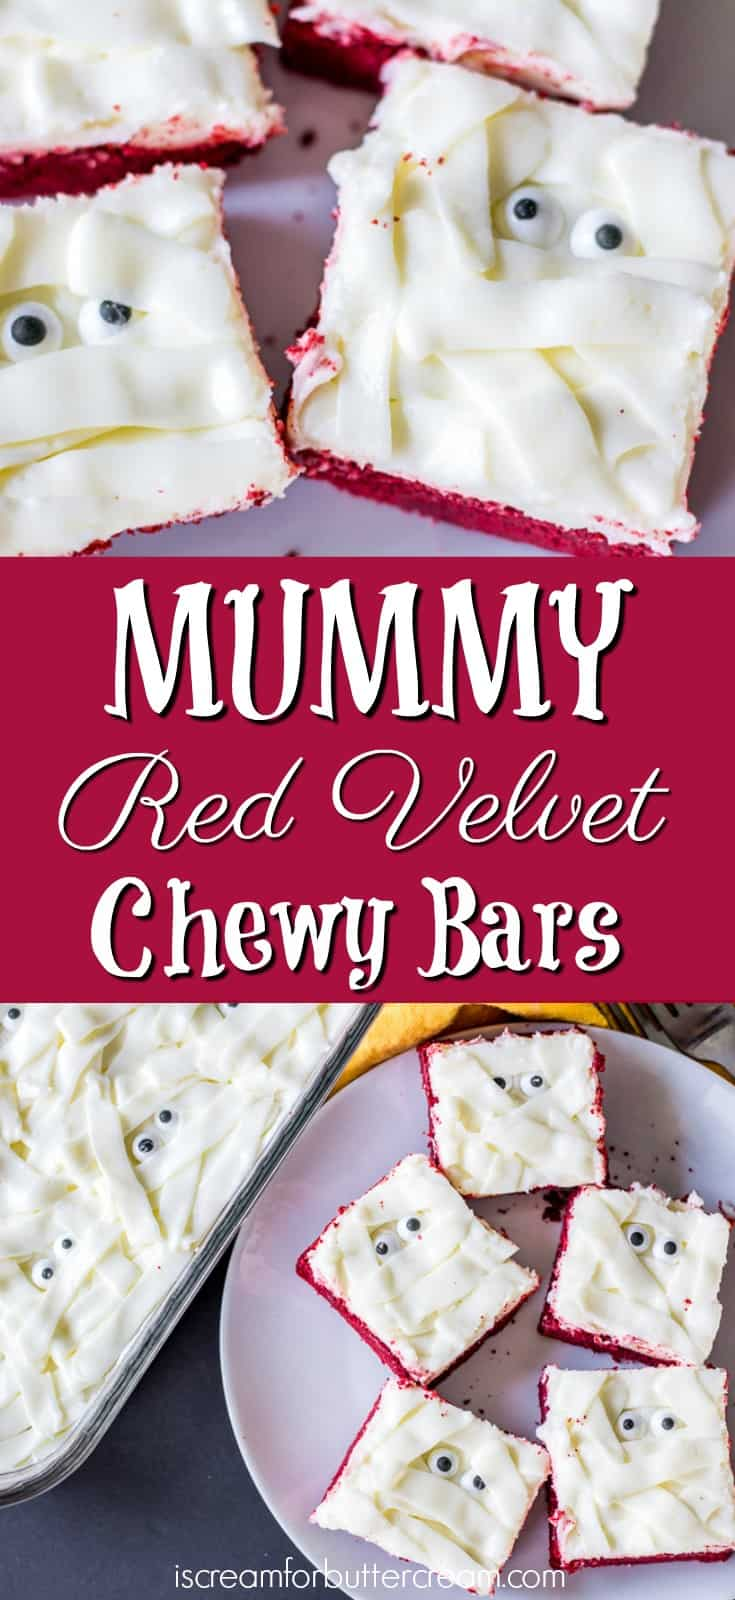 Mummy Red Velvet Chewy Bars Pinterest Graphic